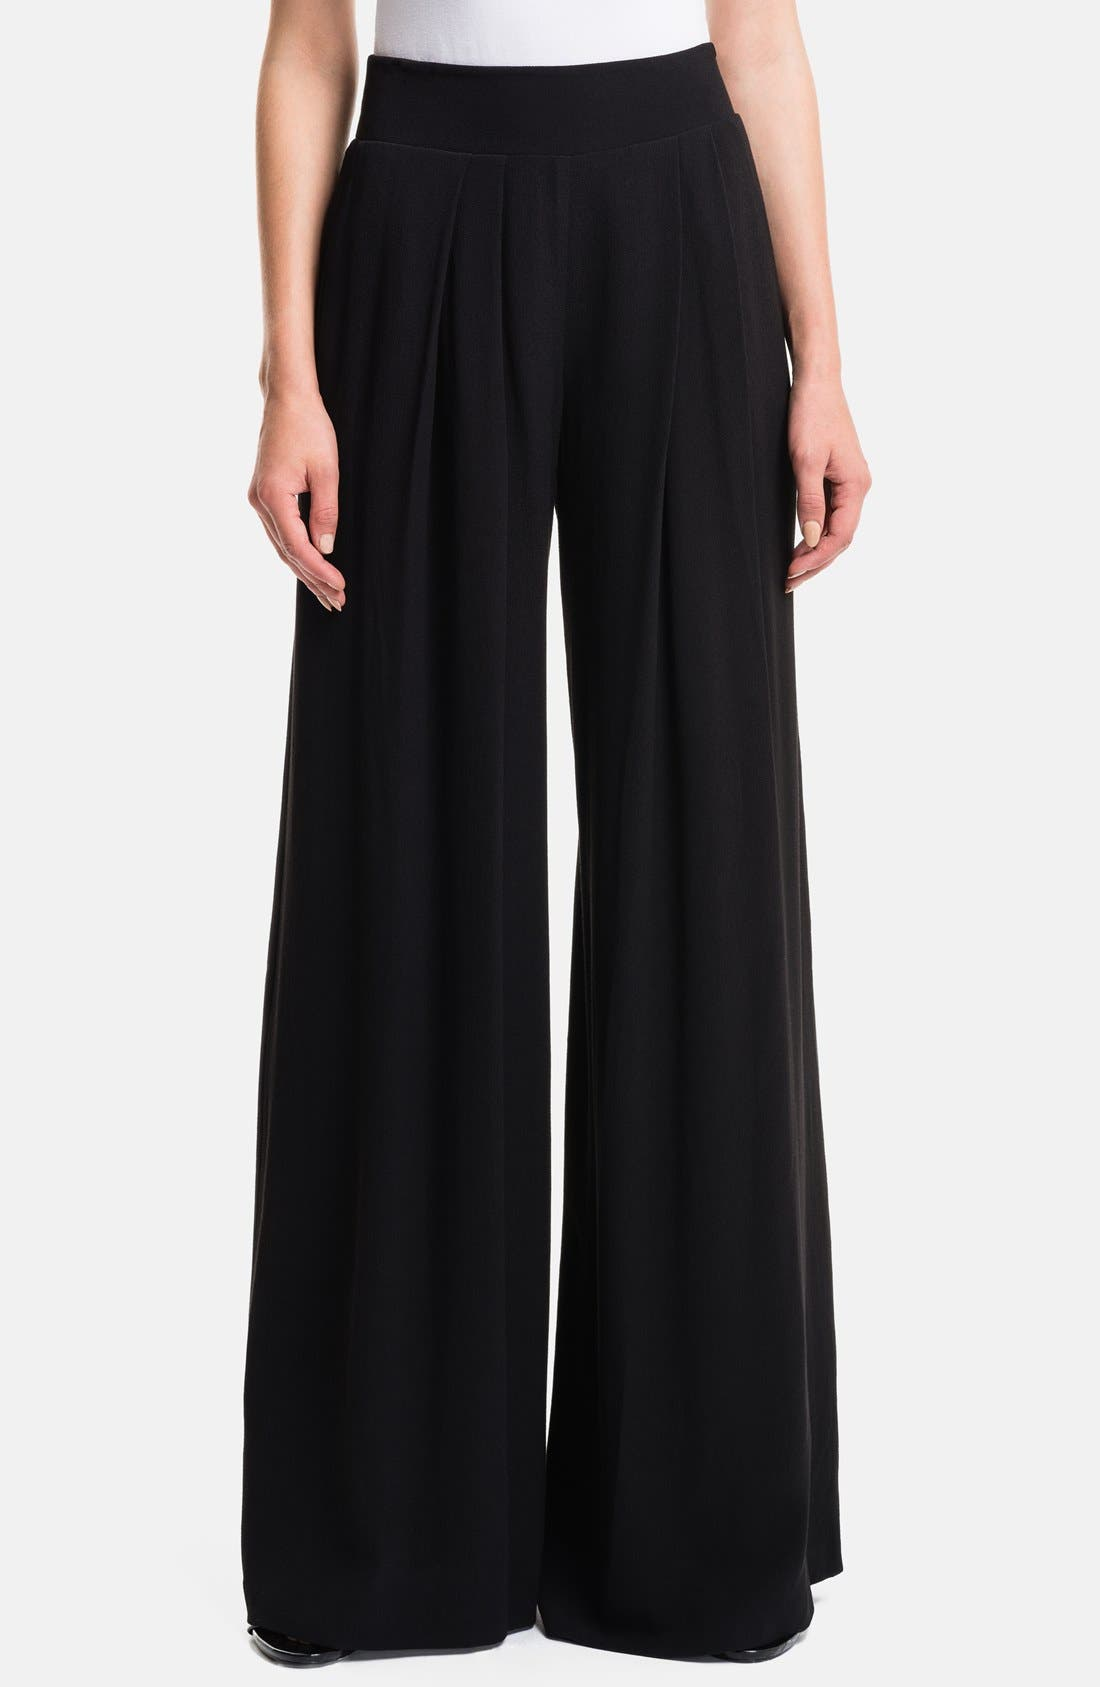 Main Image - 1.STATE High Rise Wide Leg Trousers